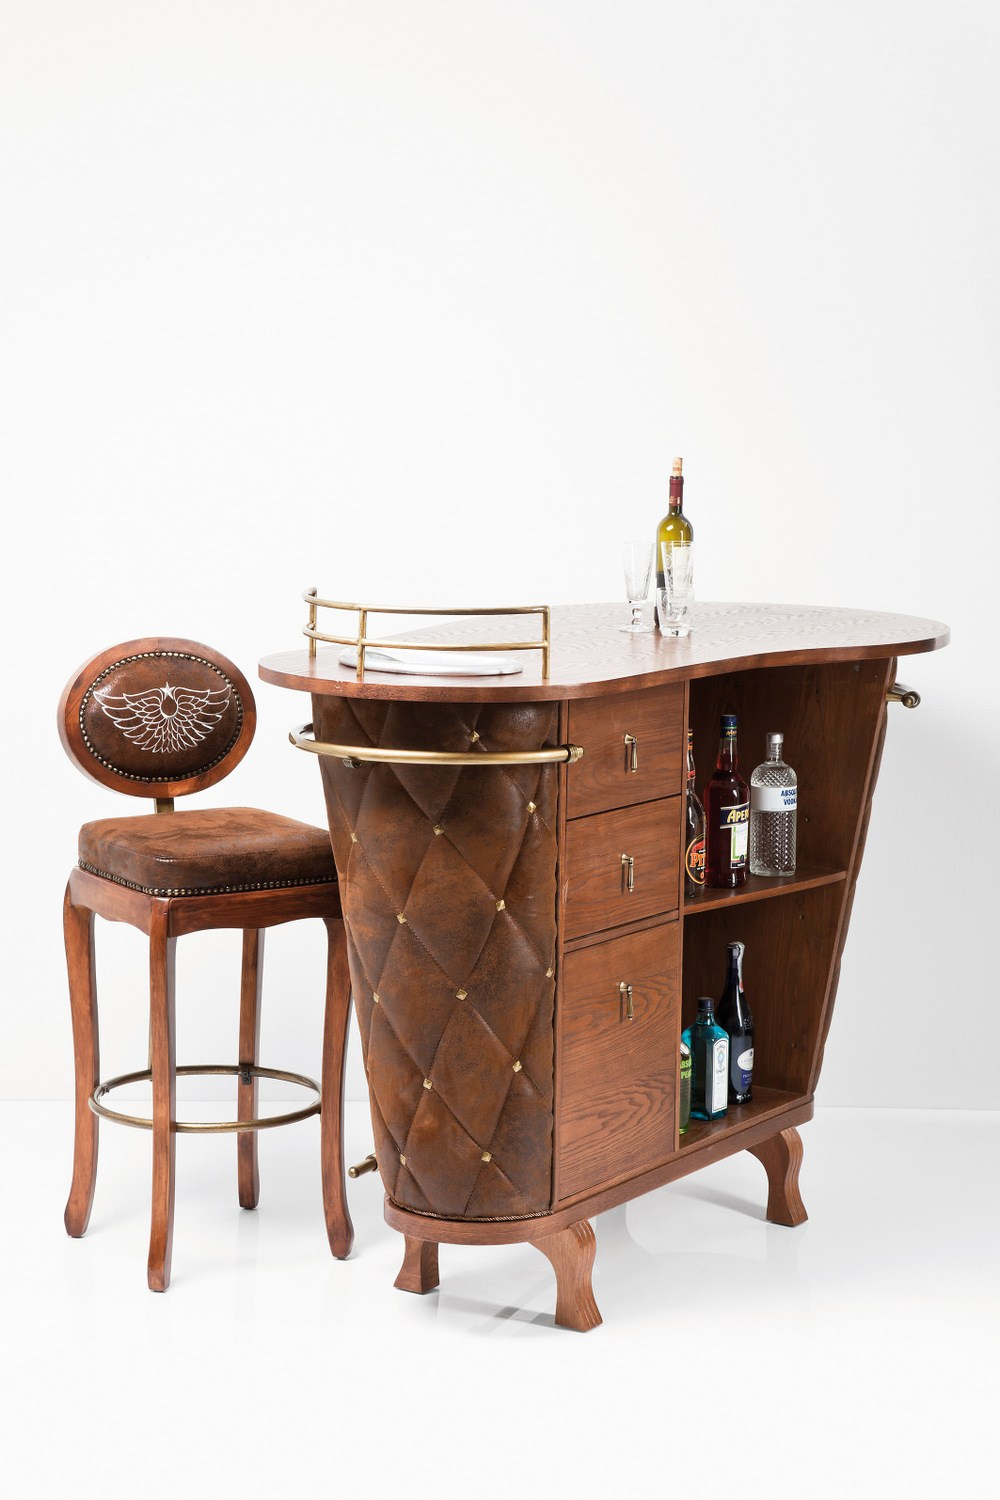 Rockstar vintage meuble bar by kare design for Meuble bar design